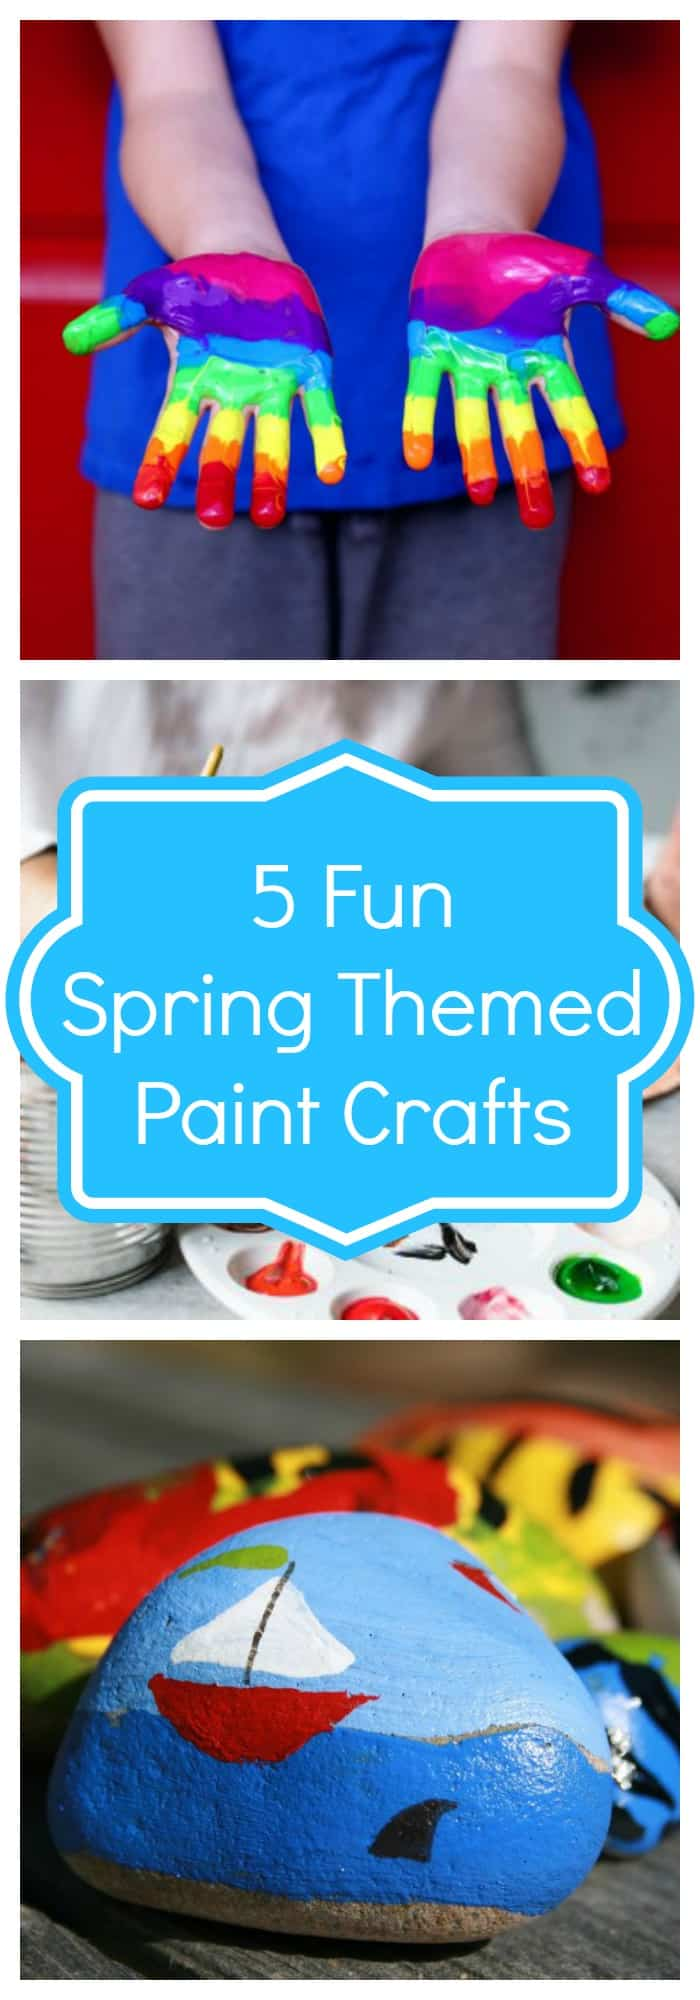 5 Fun Spring Themed Paint Crafts to Do With Kids